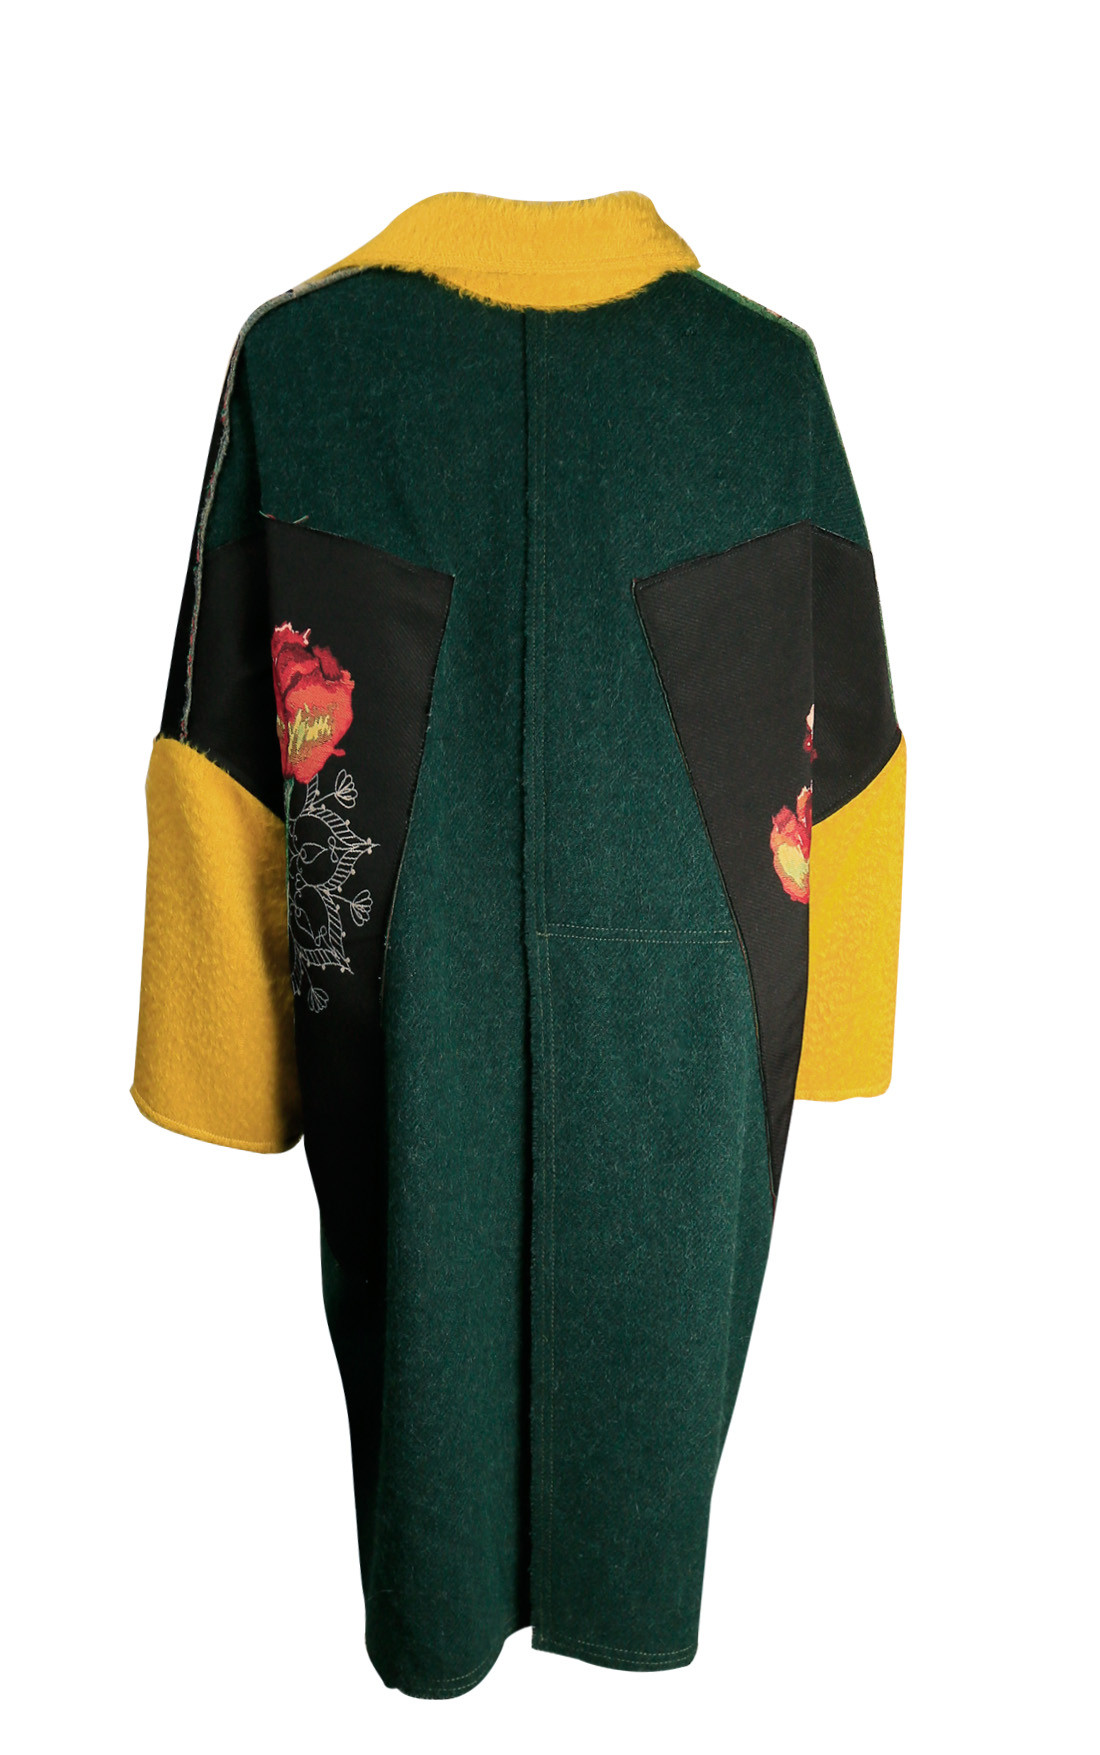 Ermanno Gallamini - Oversized Block Colour Coat (FW19-CAPPOTTOAGATA-26)